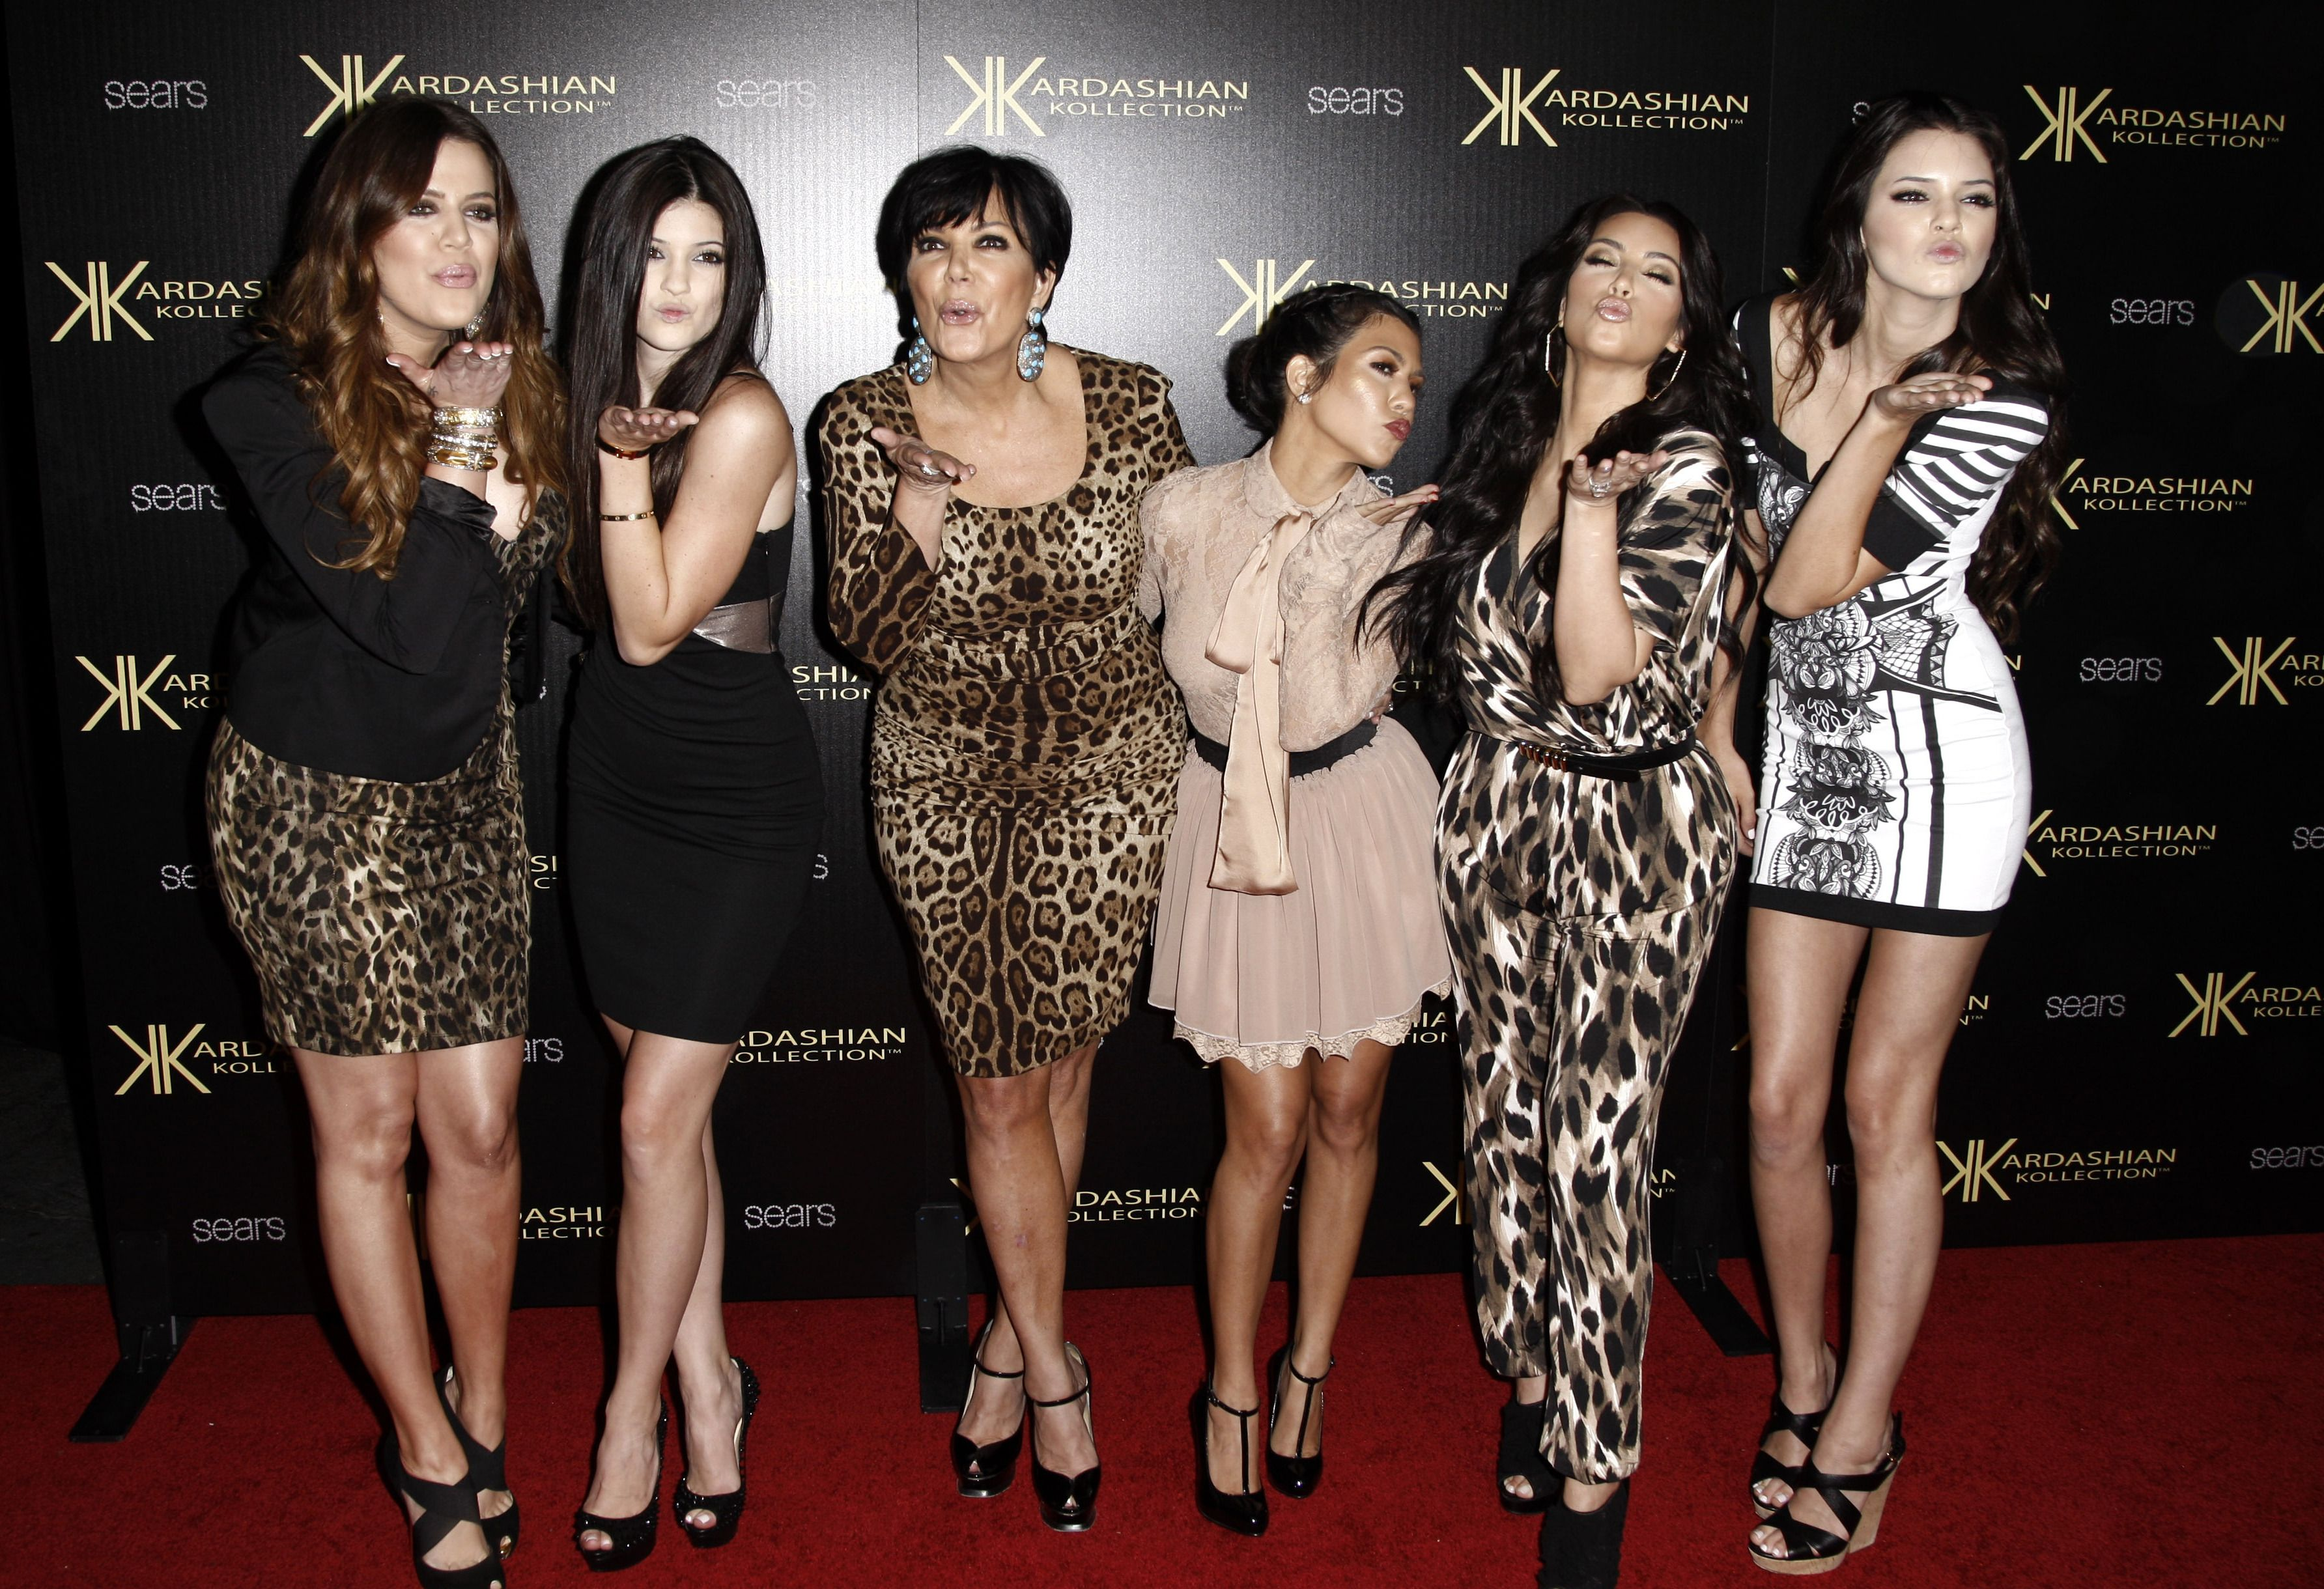 The Kardashians\' Twitter Beef With Chloe Moretz Gets X-Rated - http ...